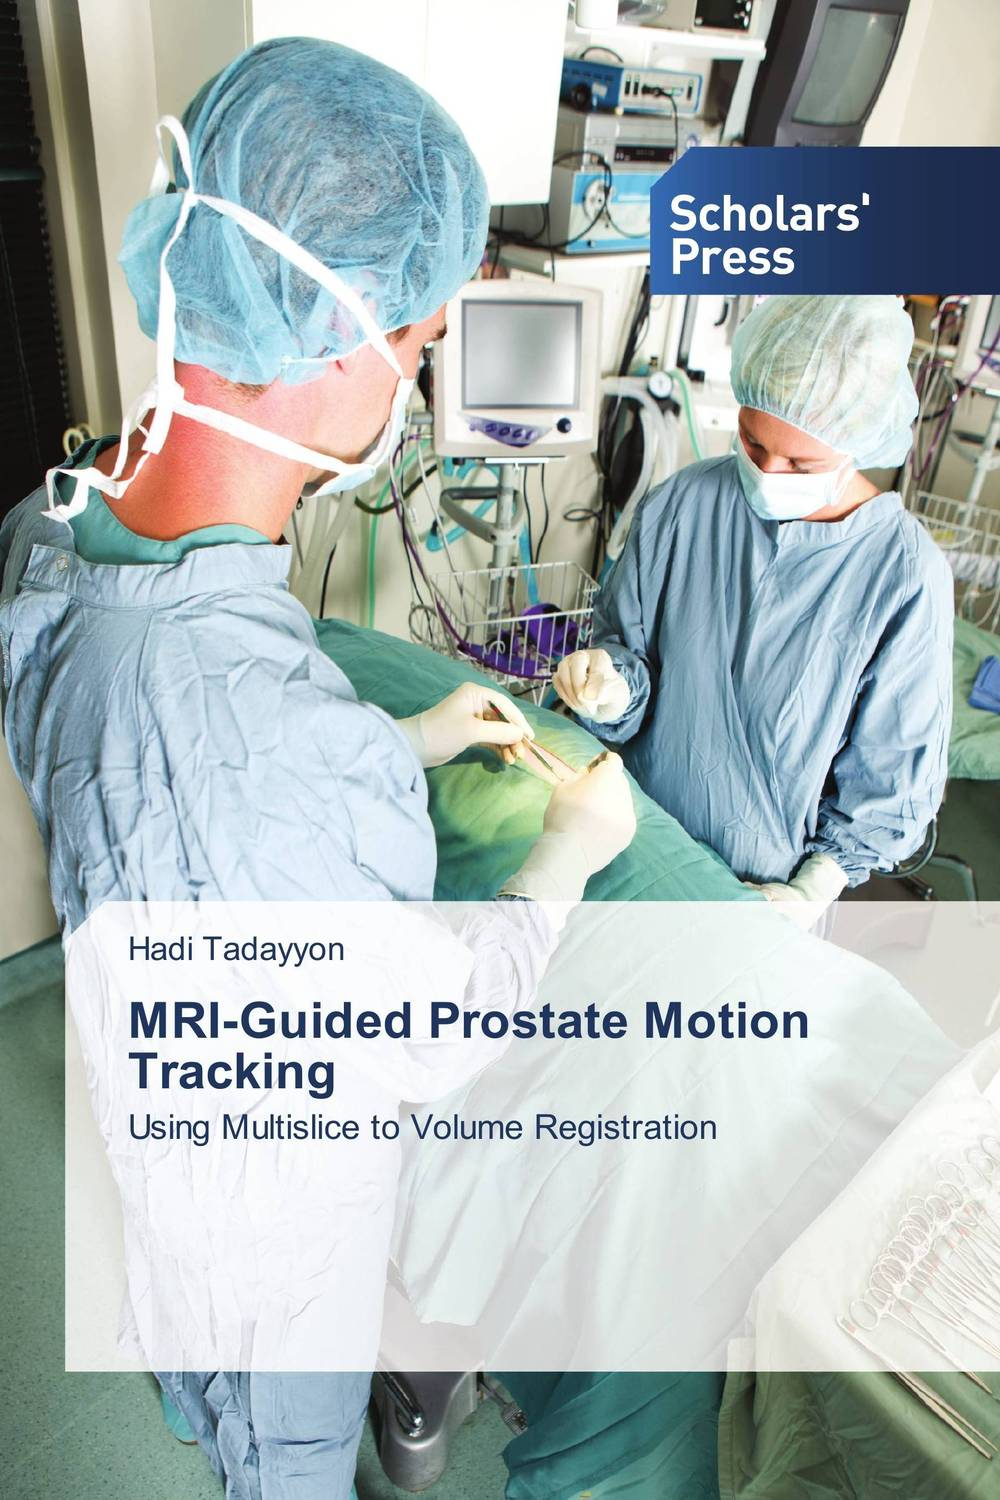 MRI-Guided Prostate Motion Tracking naturalcure cure prostatitis caps ules cure prostate diseases relieve prostate pain and help solve urination problems